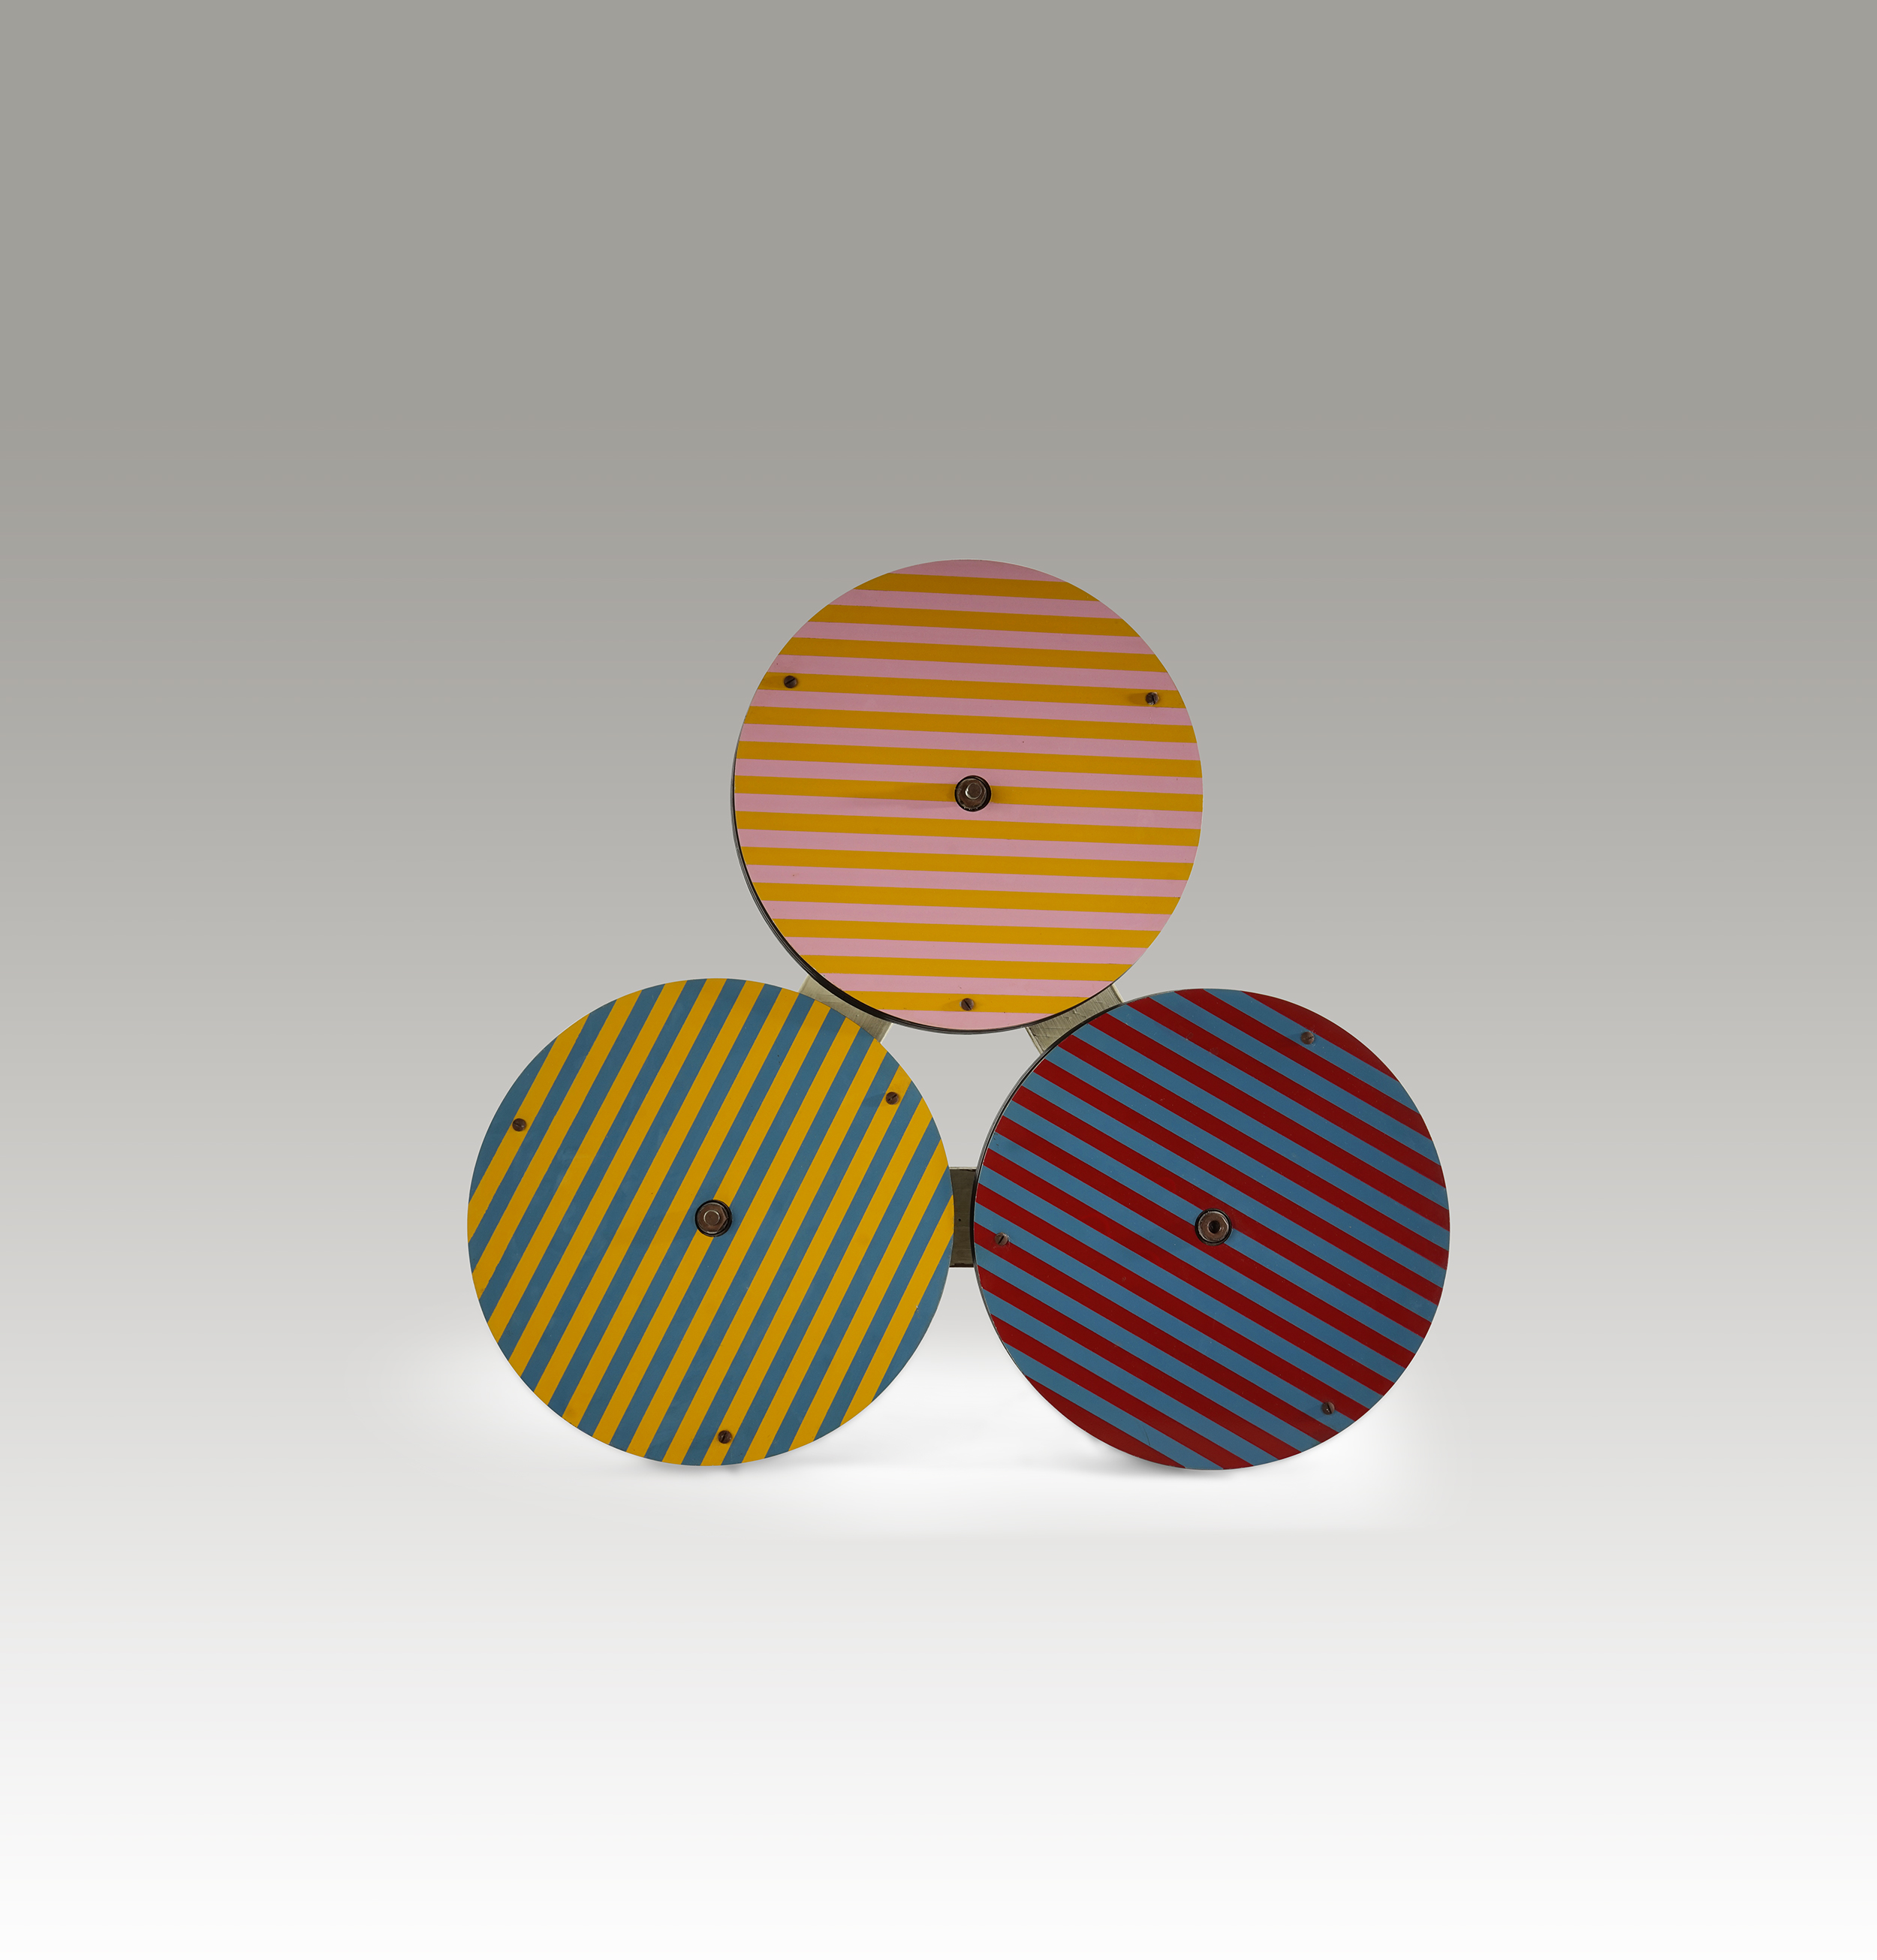 Untitled ,  Acrylic on aluminum with rotating disks, 1960s, 28 x 26 x 6 1/2 inches